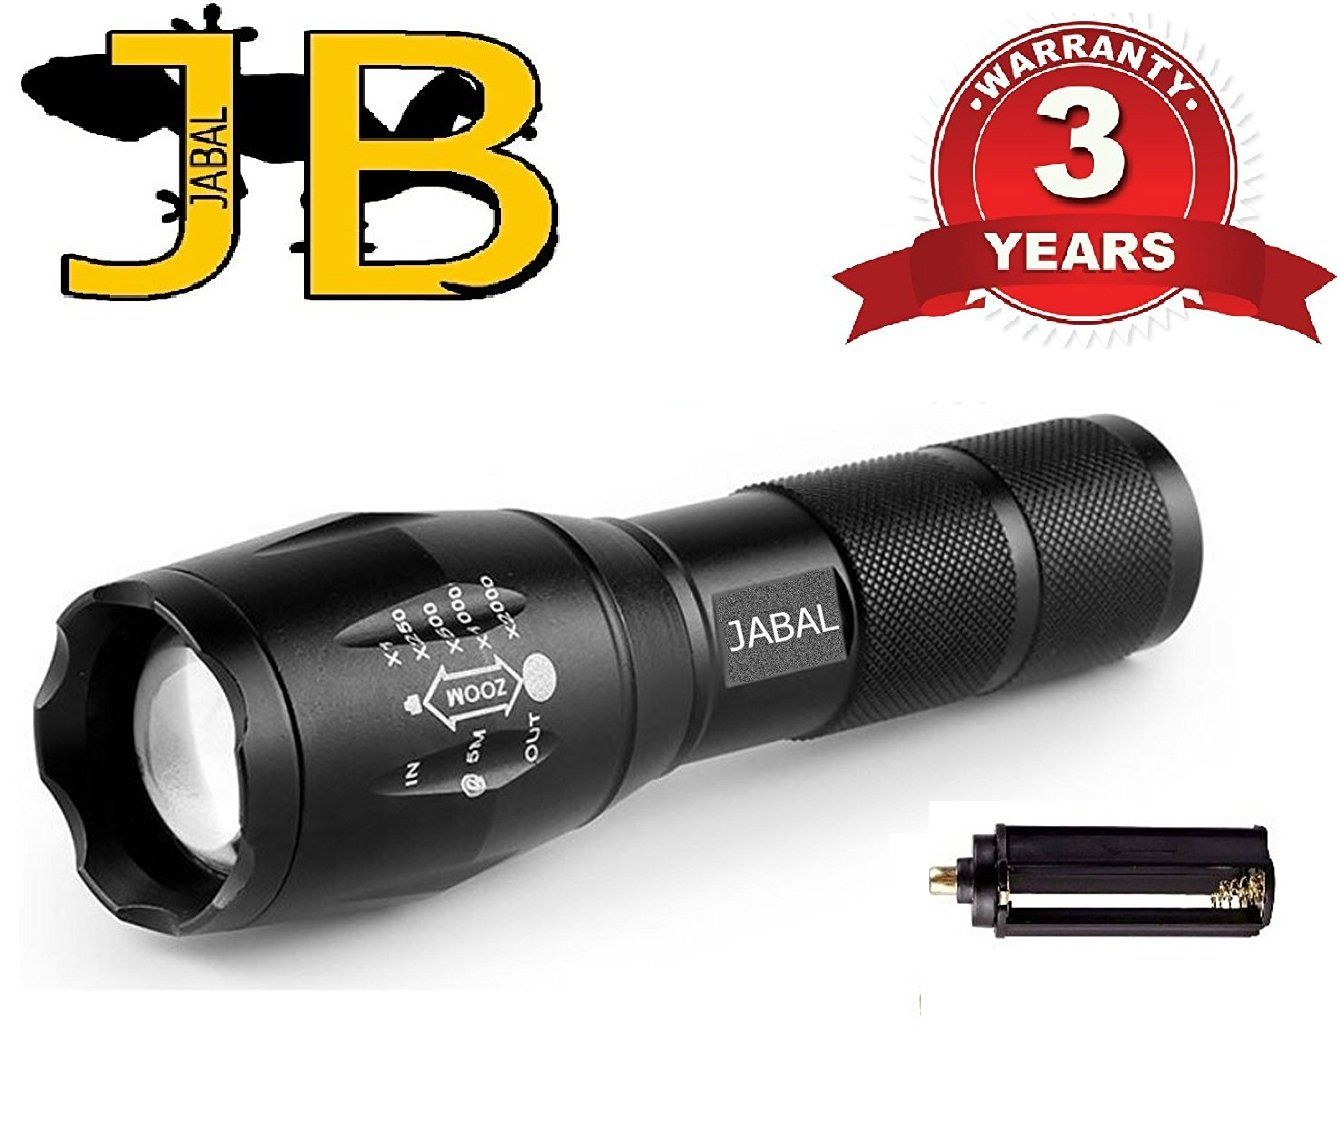 JABAL Indestructible Flashlight Waterproof Mini Cree LED Pocket Tactical 1000 Lumen. This Torch Light 5 Modes with Strobe and SOS. High Military Grade Police use. Great For Hiking, Camping, Biking.